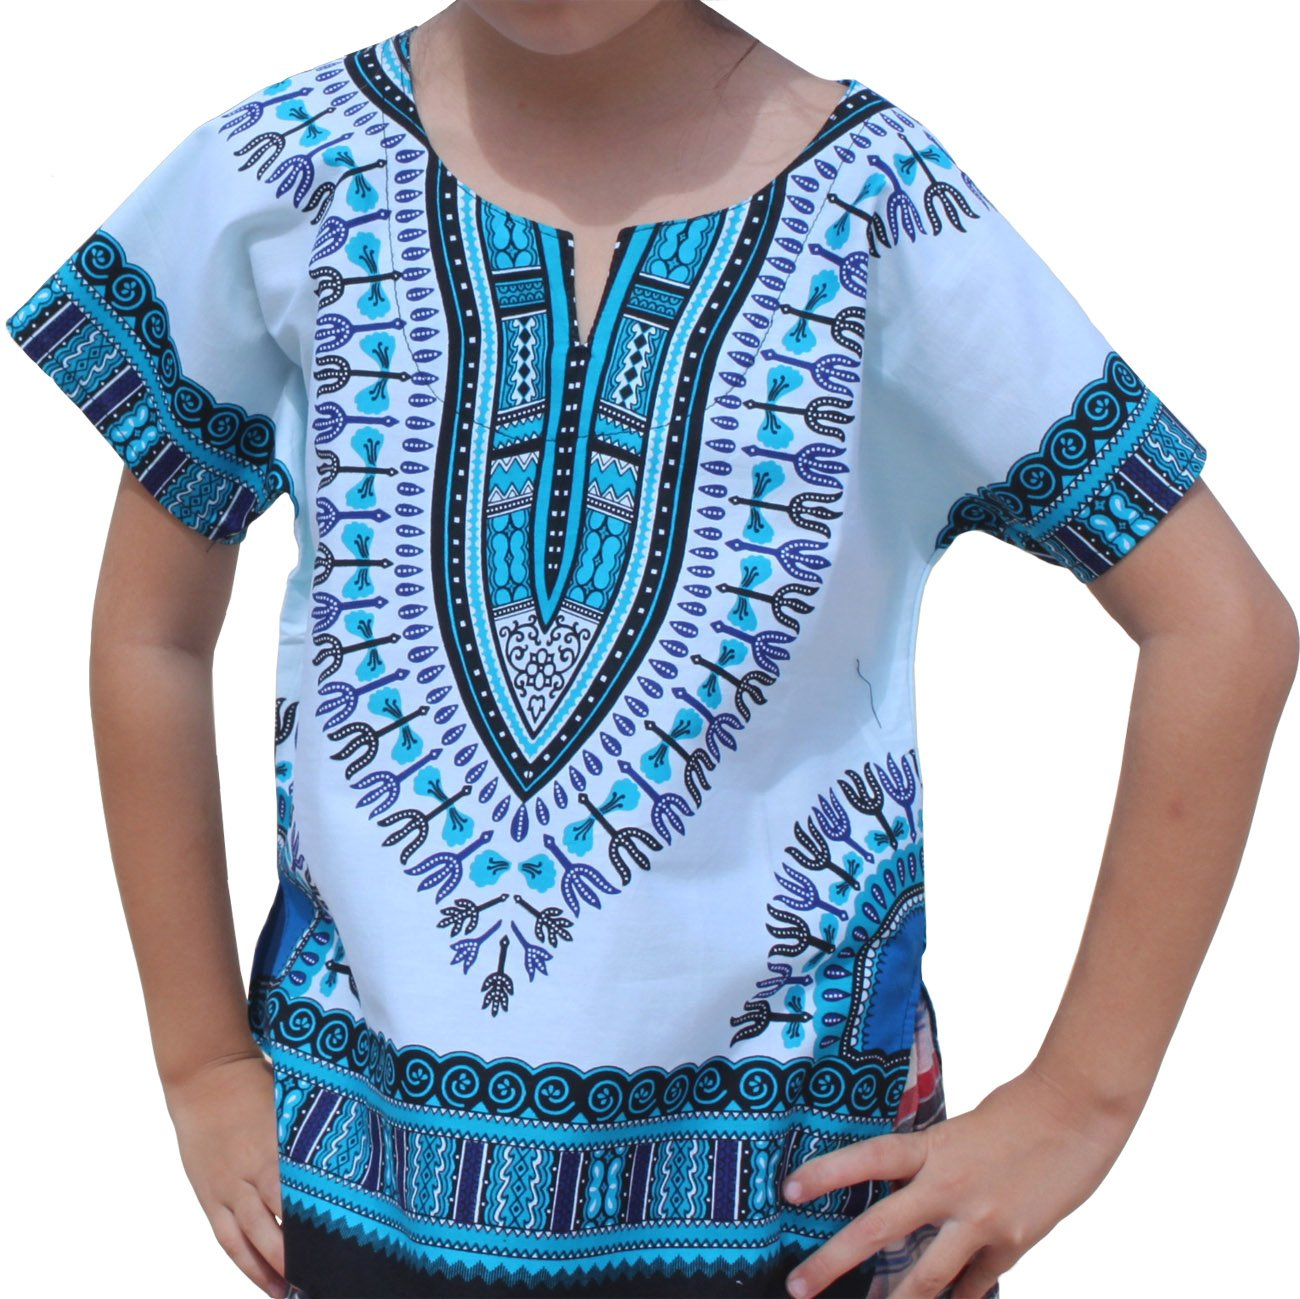 RaanPahMuang Unisex Bright African White Children Dashiki Cotton Shirt, 8-10 Years, Light Blue On White